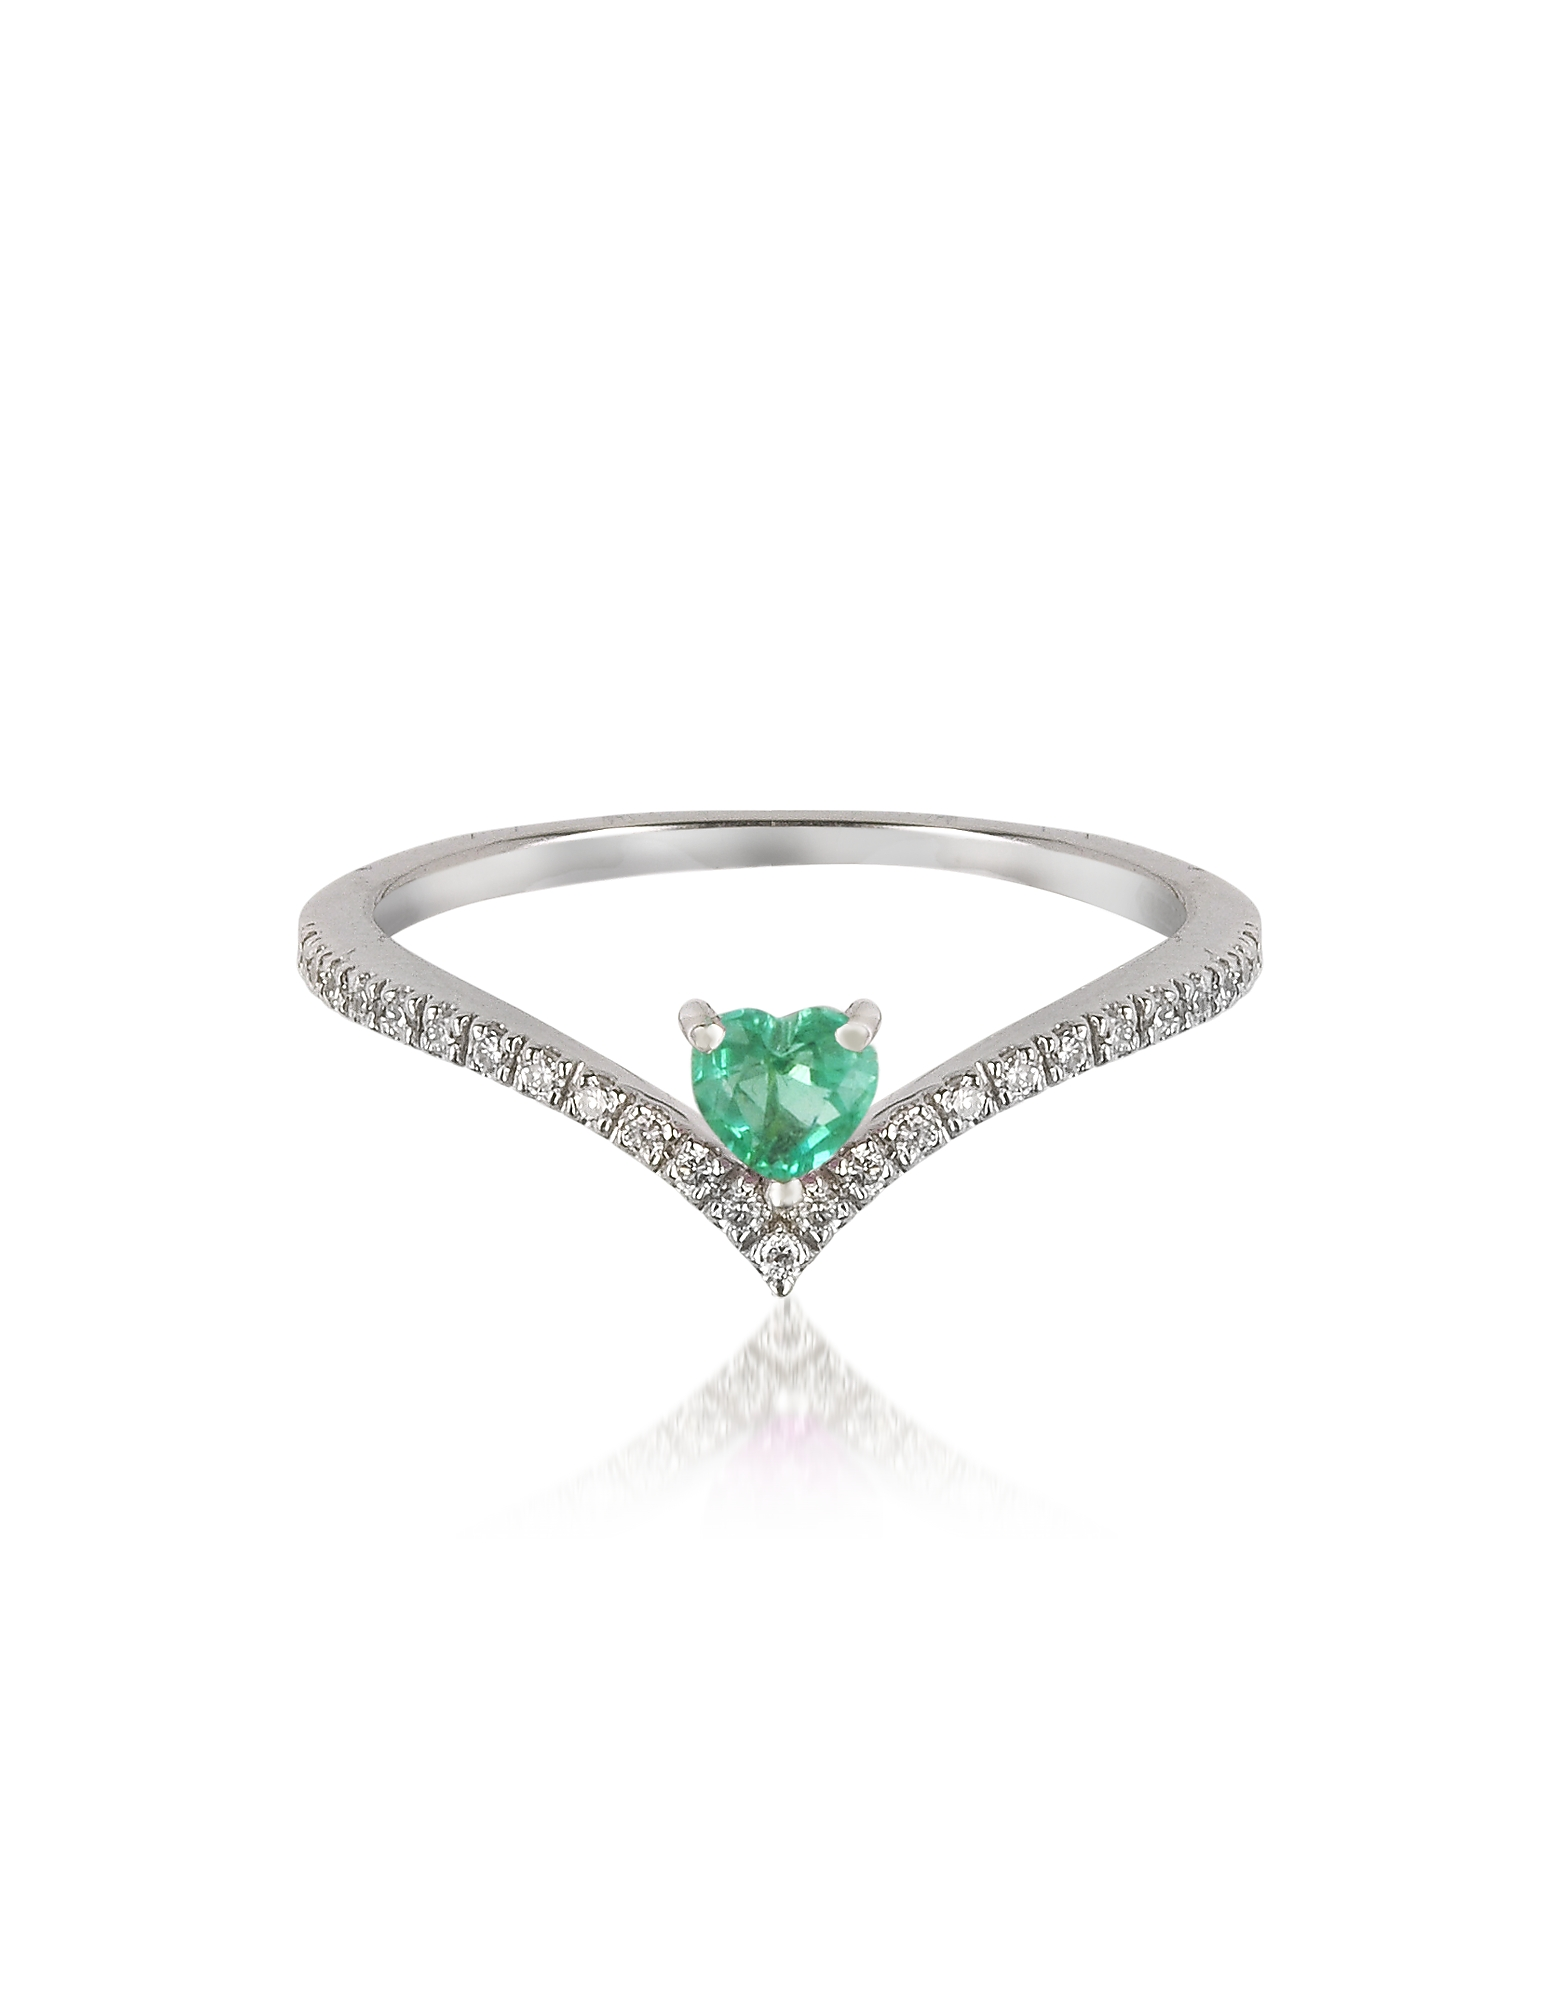 Forzieri Rings, V-Shaped Diamonds Band Ring with Enclosed Emerald Heart